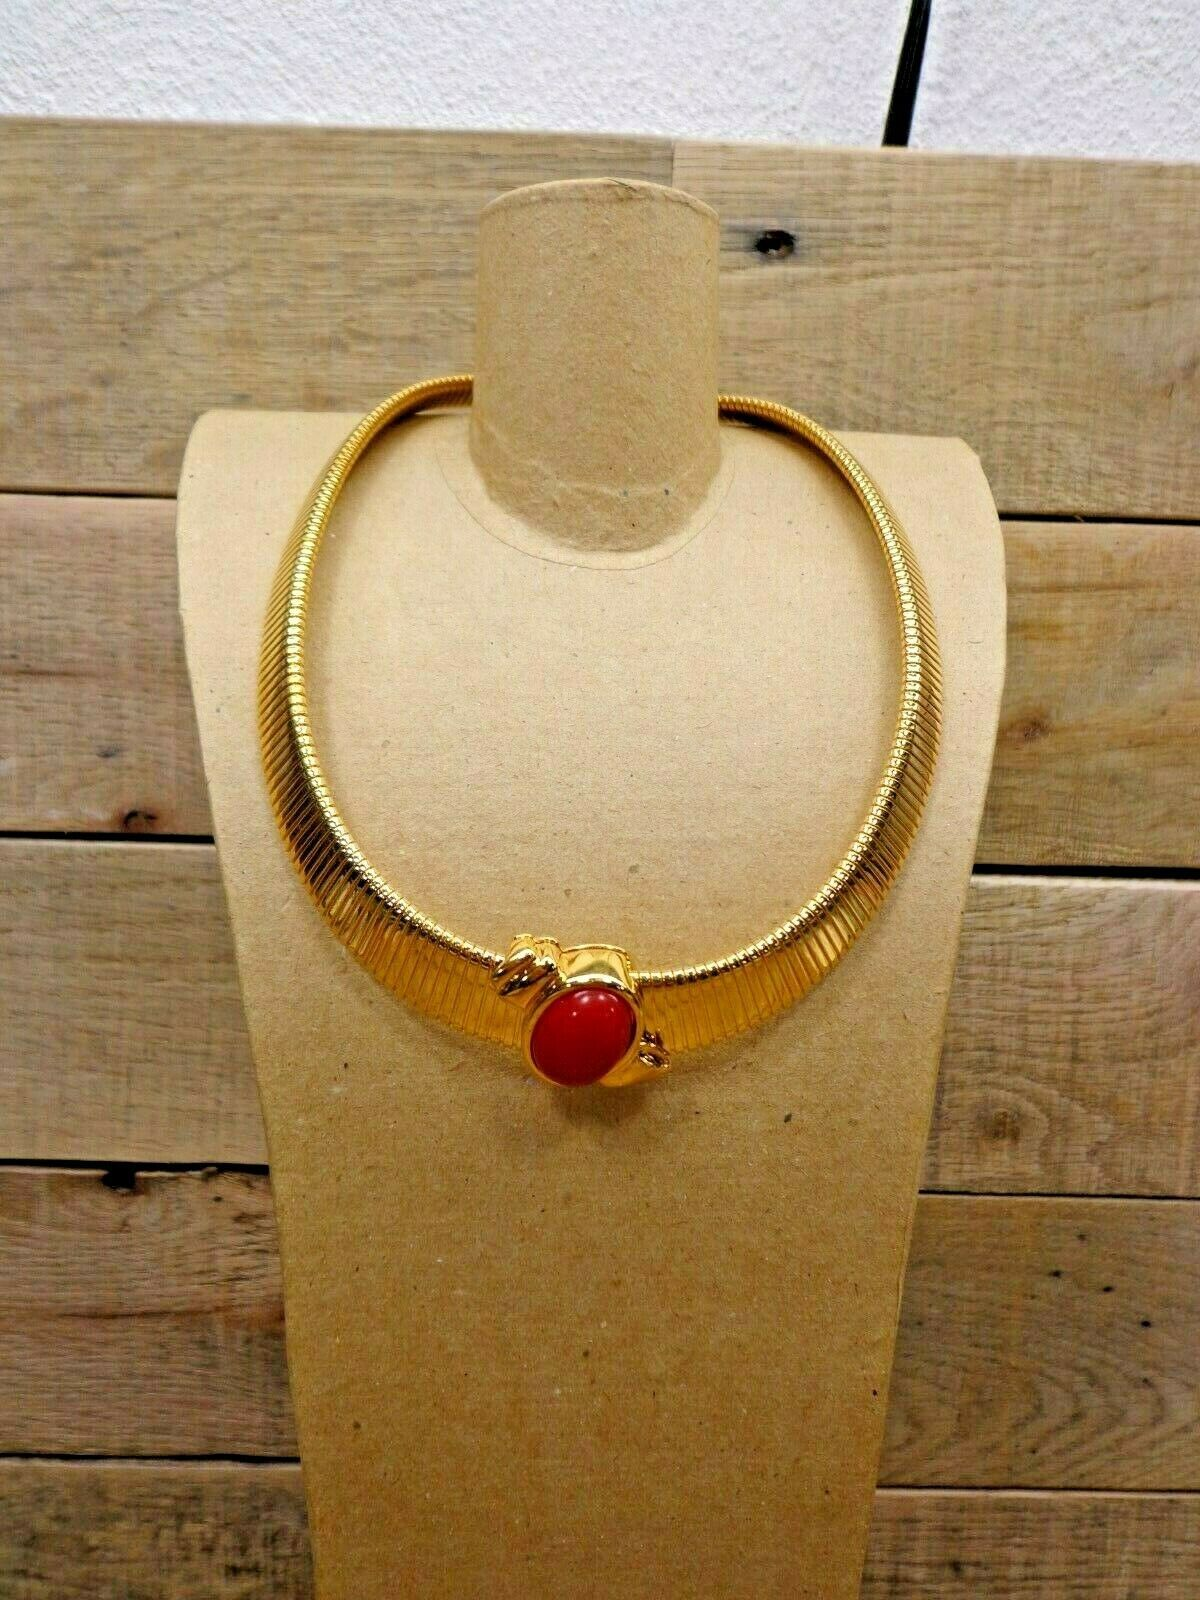 Monet Pendant Goldtone Choker Necklace Jewelry With Red Accent - $44.50